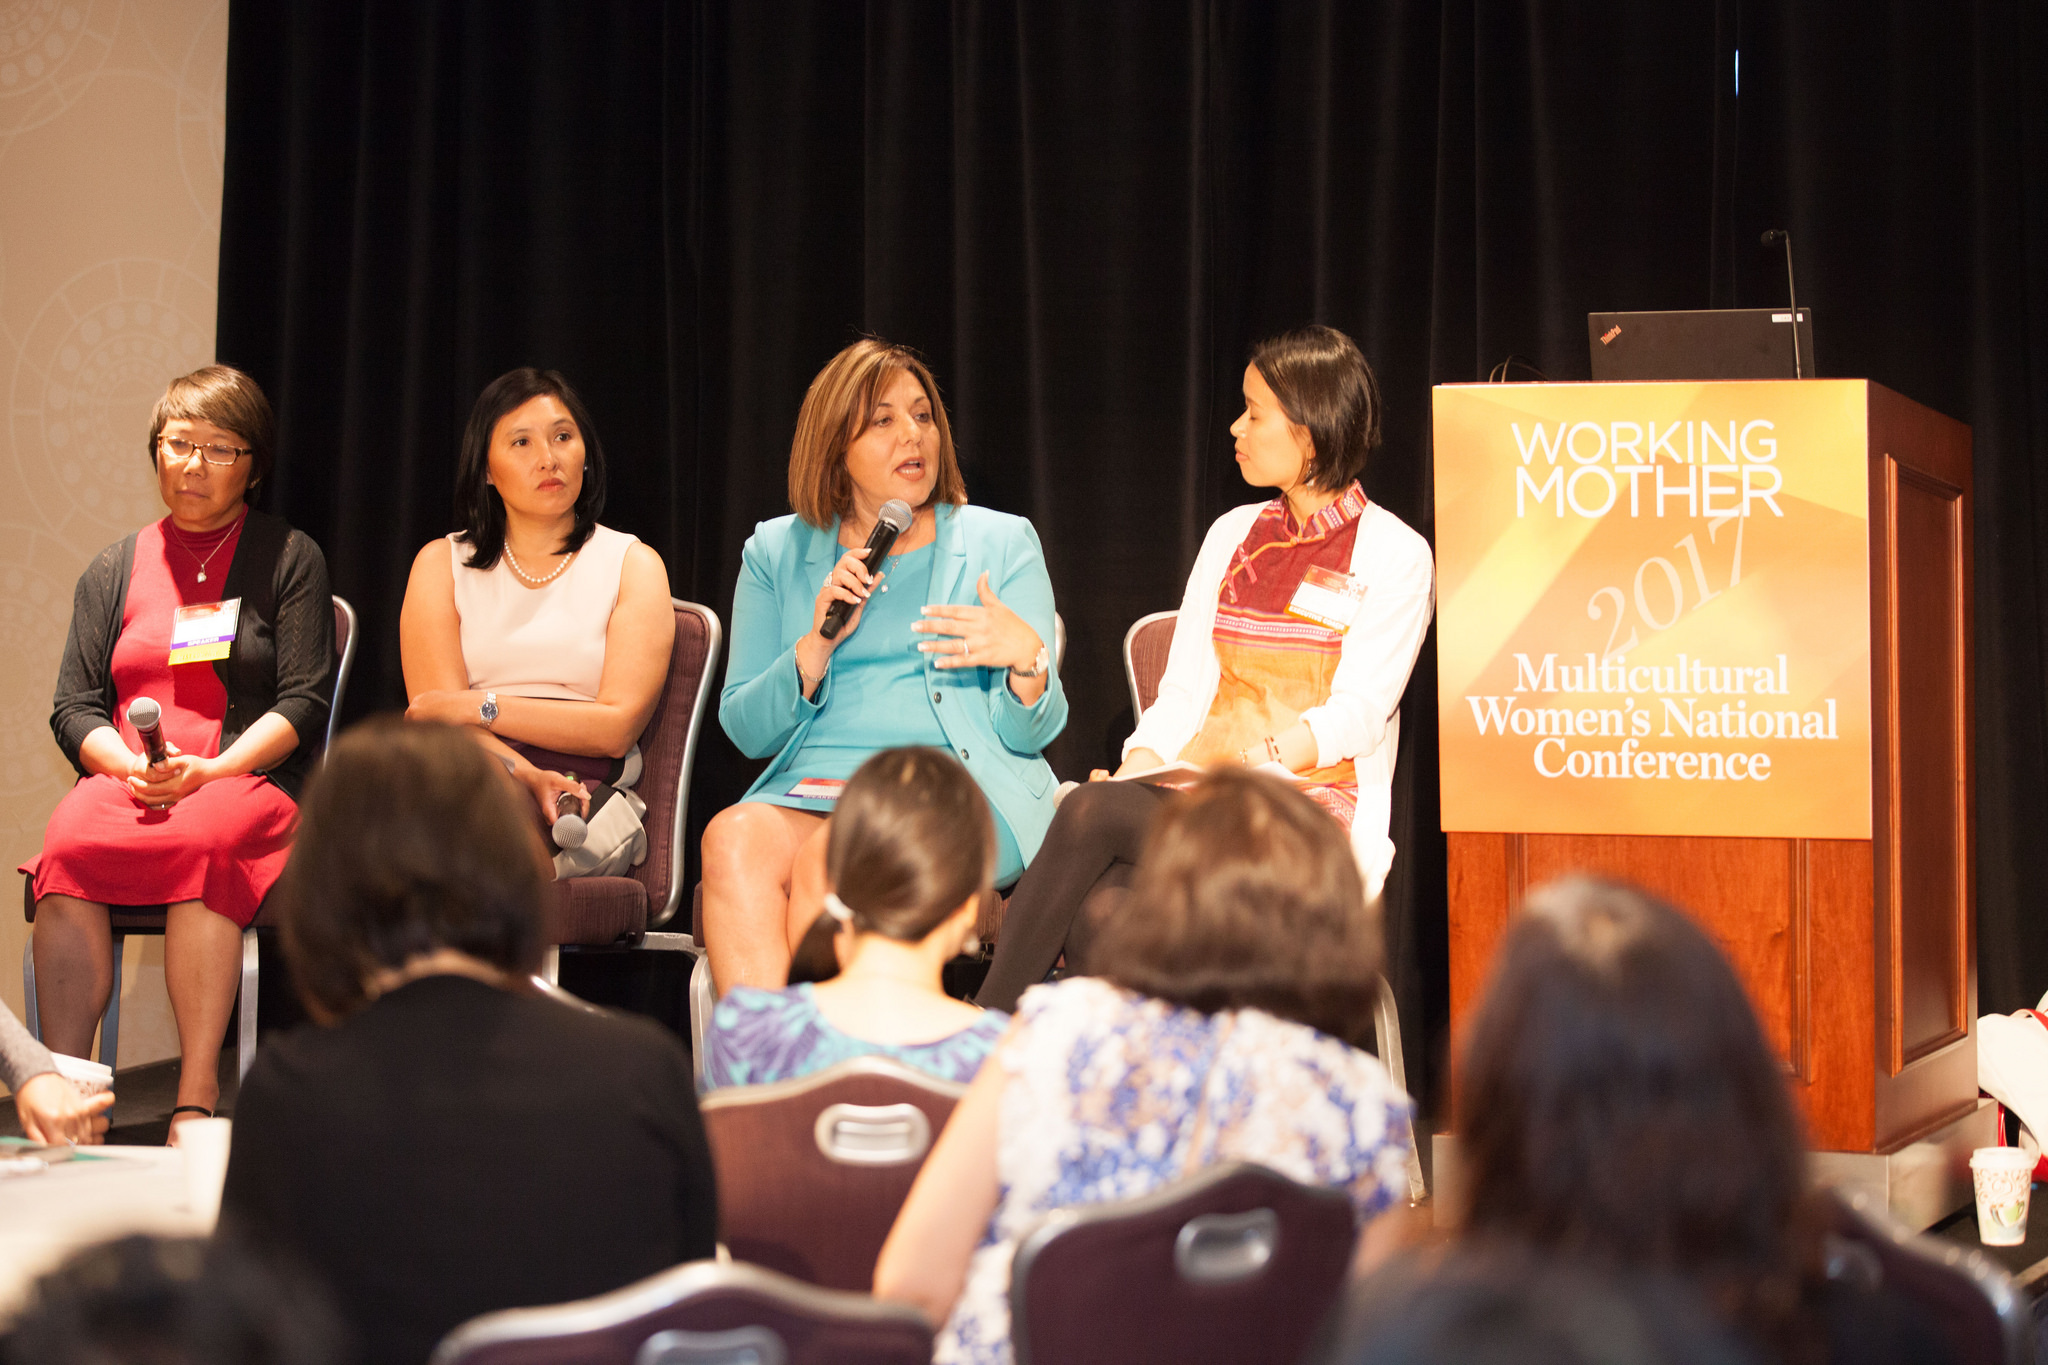 Multicultural Women's Conference